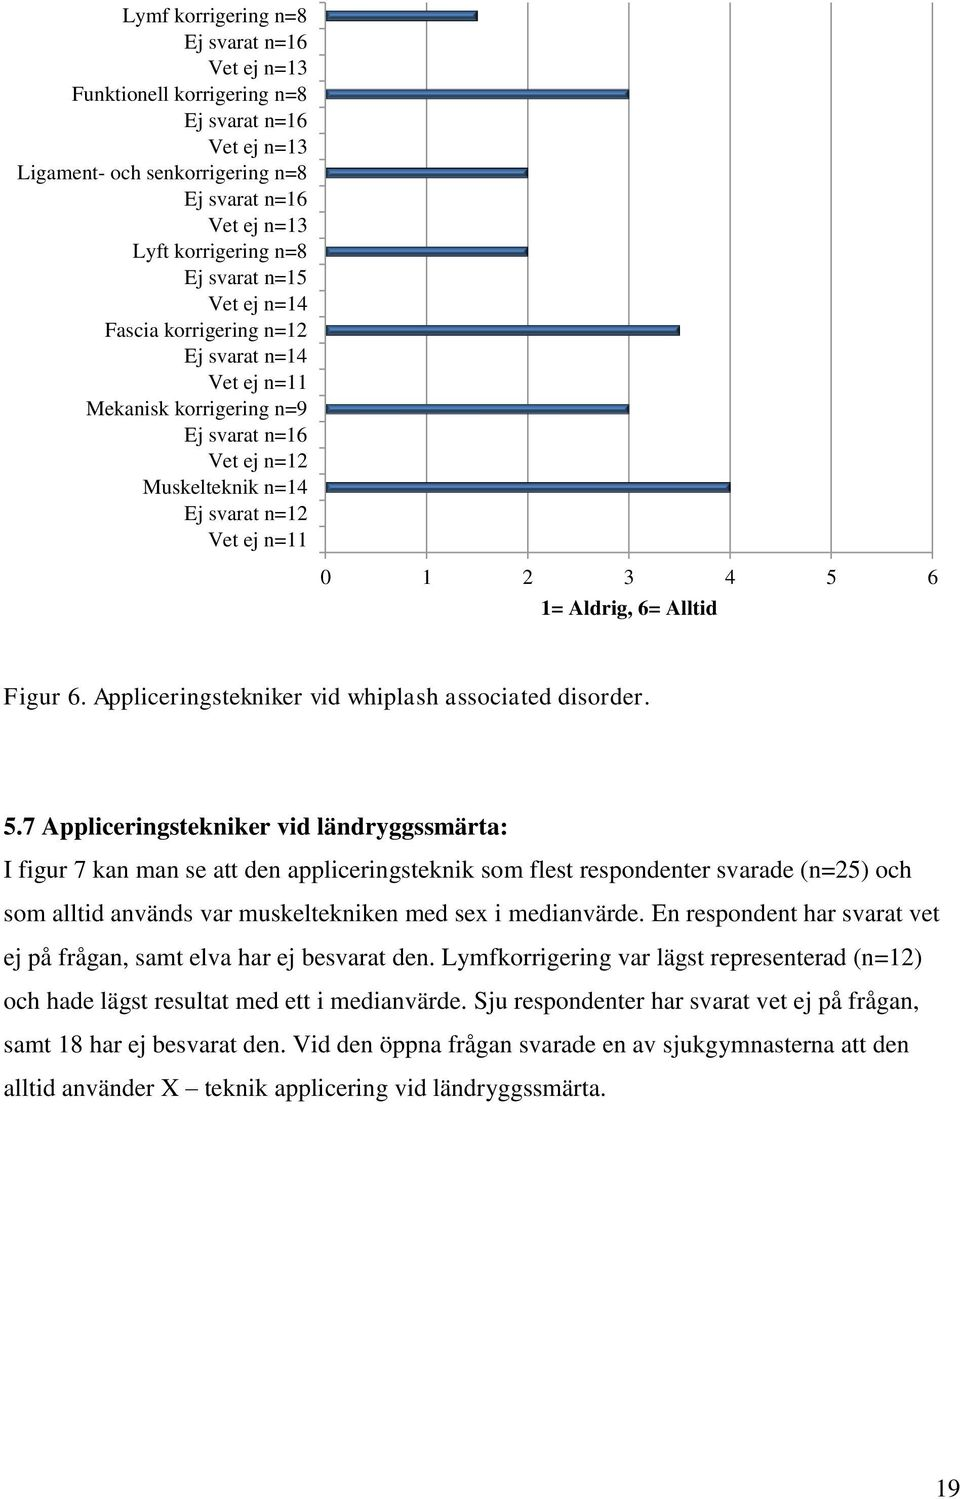 Figur 6. Appliceringstekniker vid whiplash associated disorder. 5.